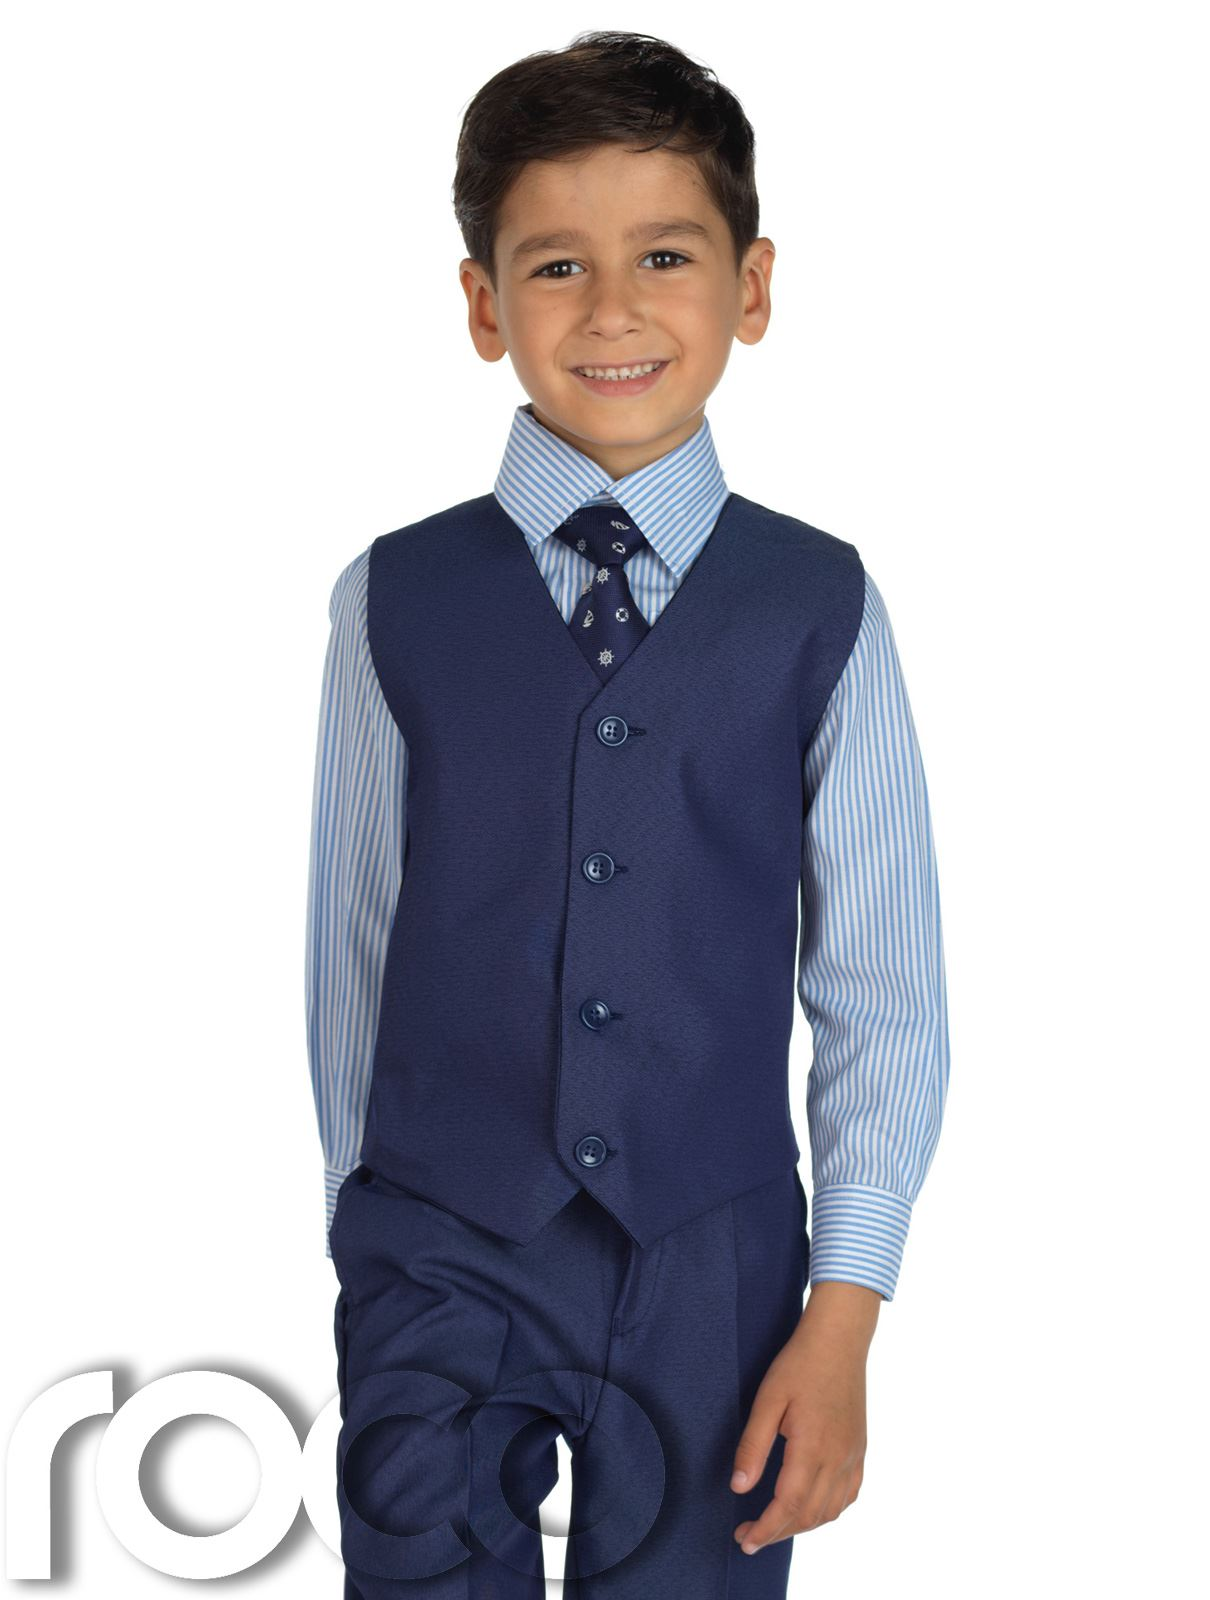 Gino Giovanni Formal Boy Navy Blue Suit From Baby to Teen. Sold by US Fairytailes. $ $ Dockers Infant & Toddler Boys' Necktie, Vest, Dress Shirt & Pants. Sold by Sears. $ $ There will always be a wedding to attend so make sure you kid has a crisp boys' suit.